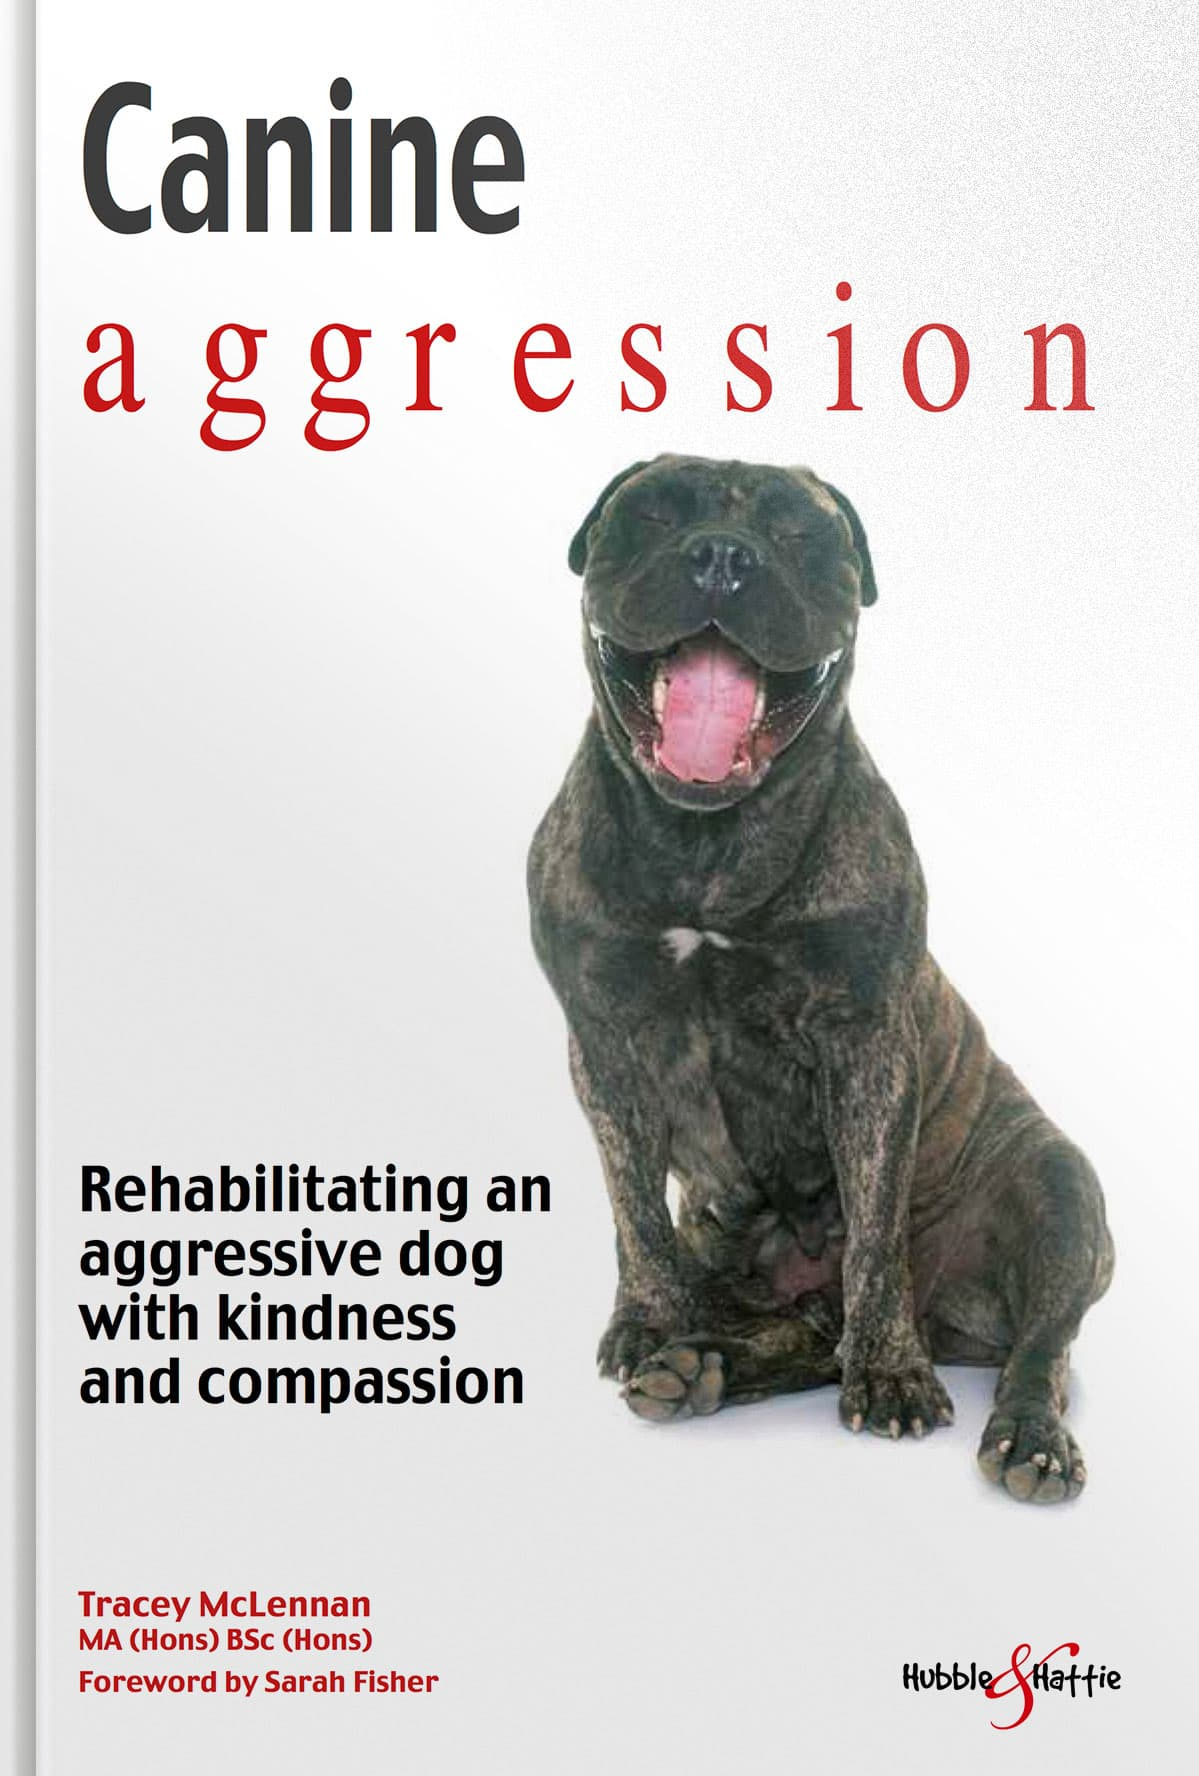 Canine aggression Rehabilitating an aggressive dog with kindness and compassion